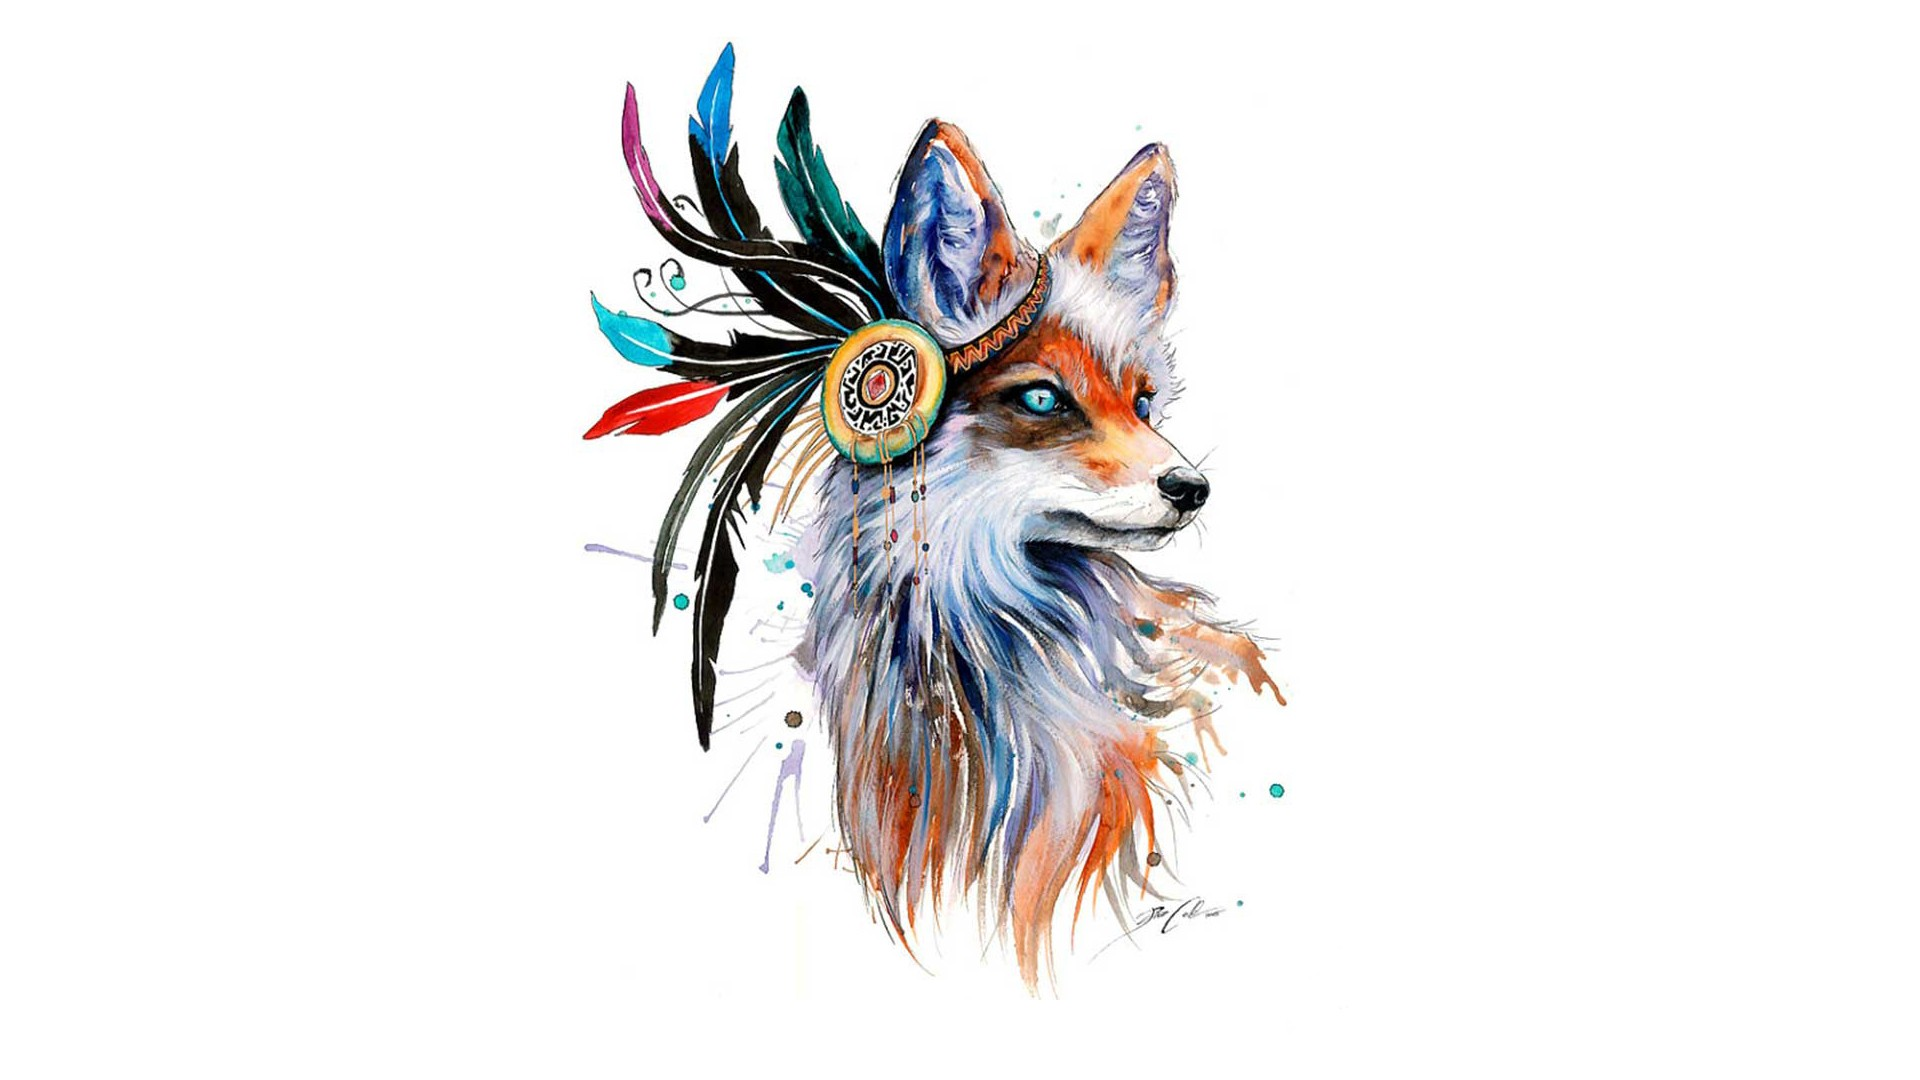 1920x1080 Wallpaper Drawing, Colorful, Illustration, Animals, Simple